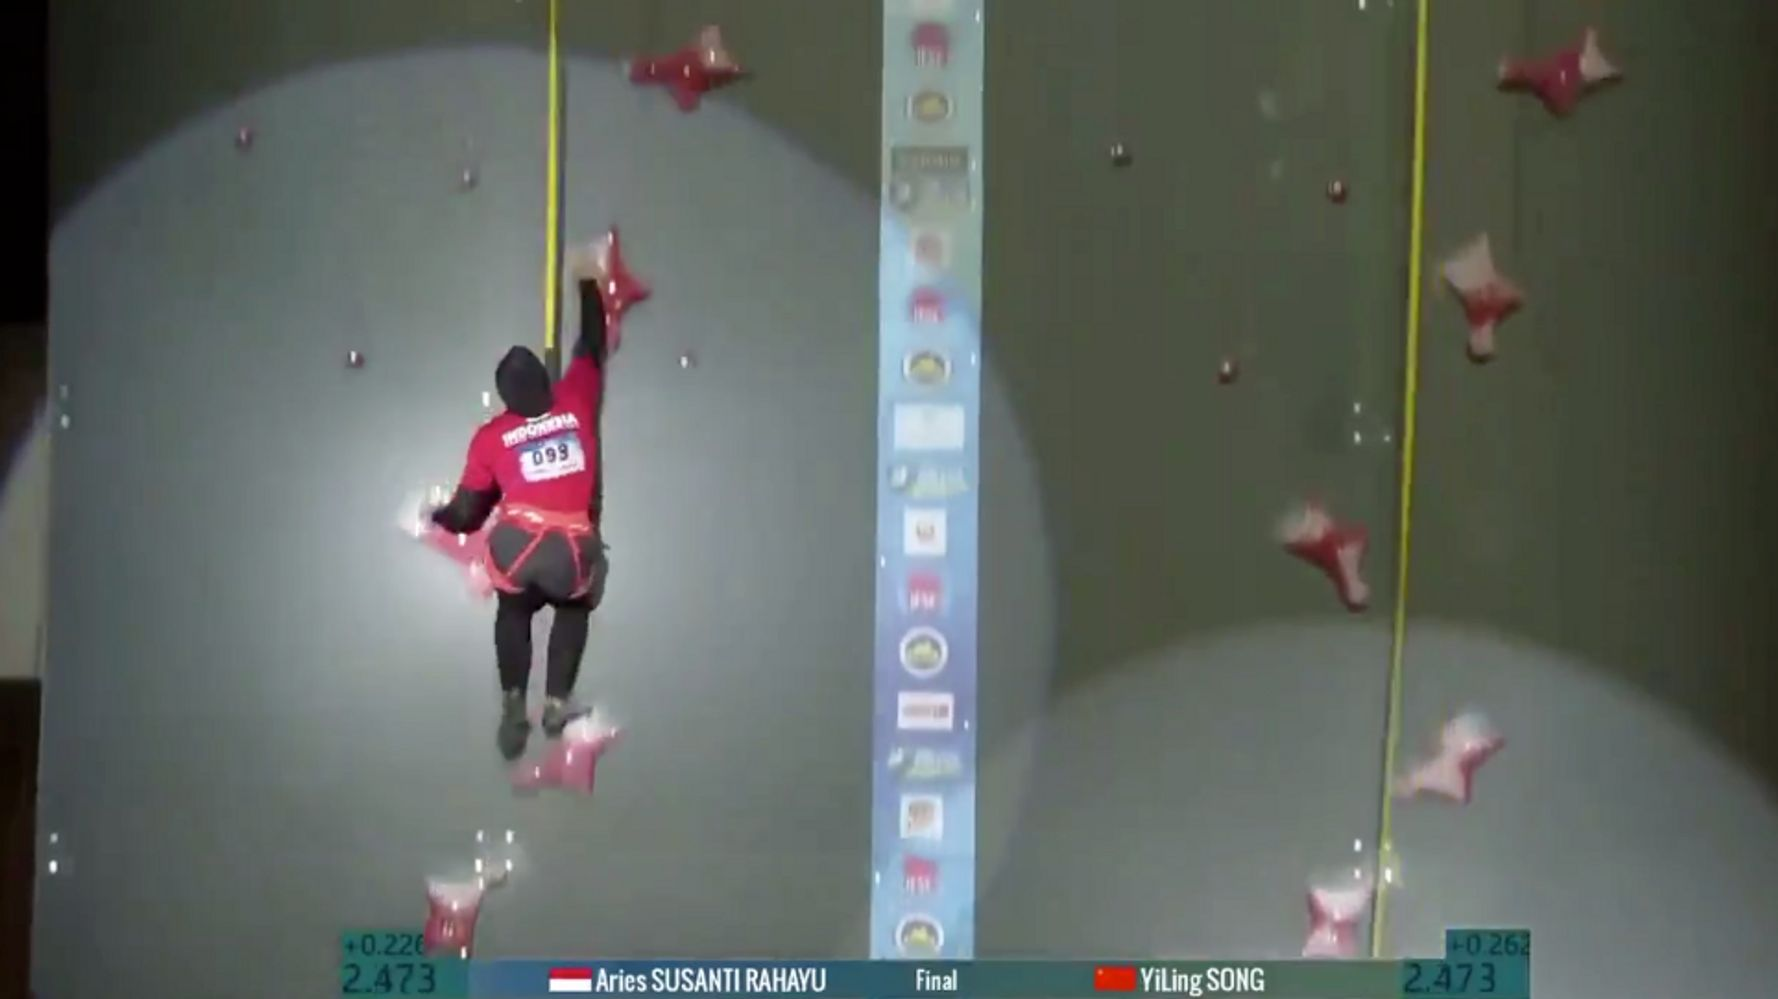 Woman Incredibly Speed Climbs Wall In Under 7 Seconds, Breaking World Record